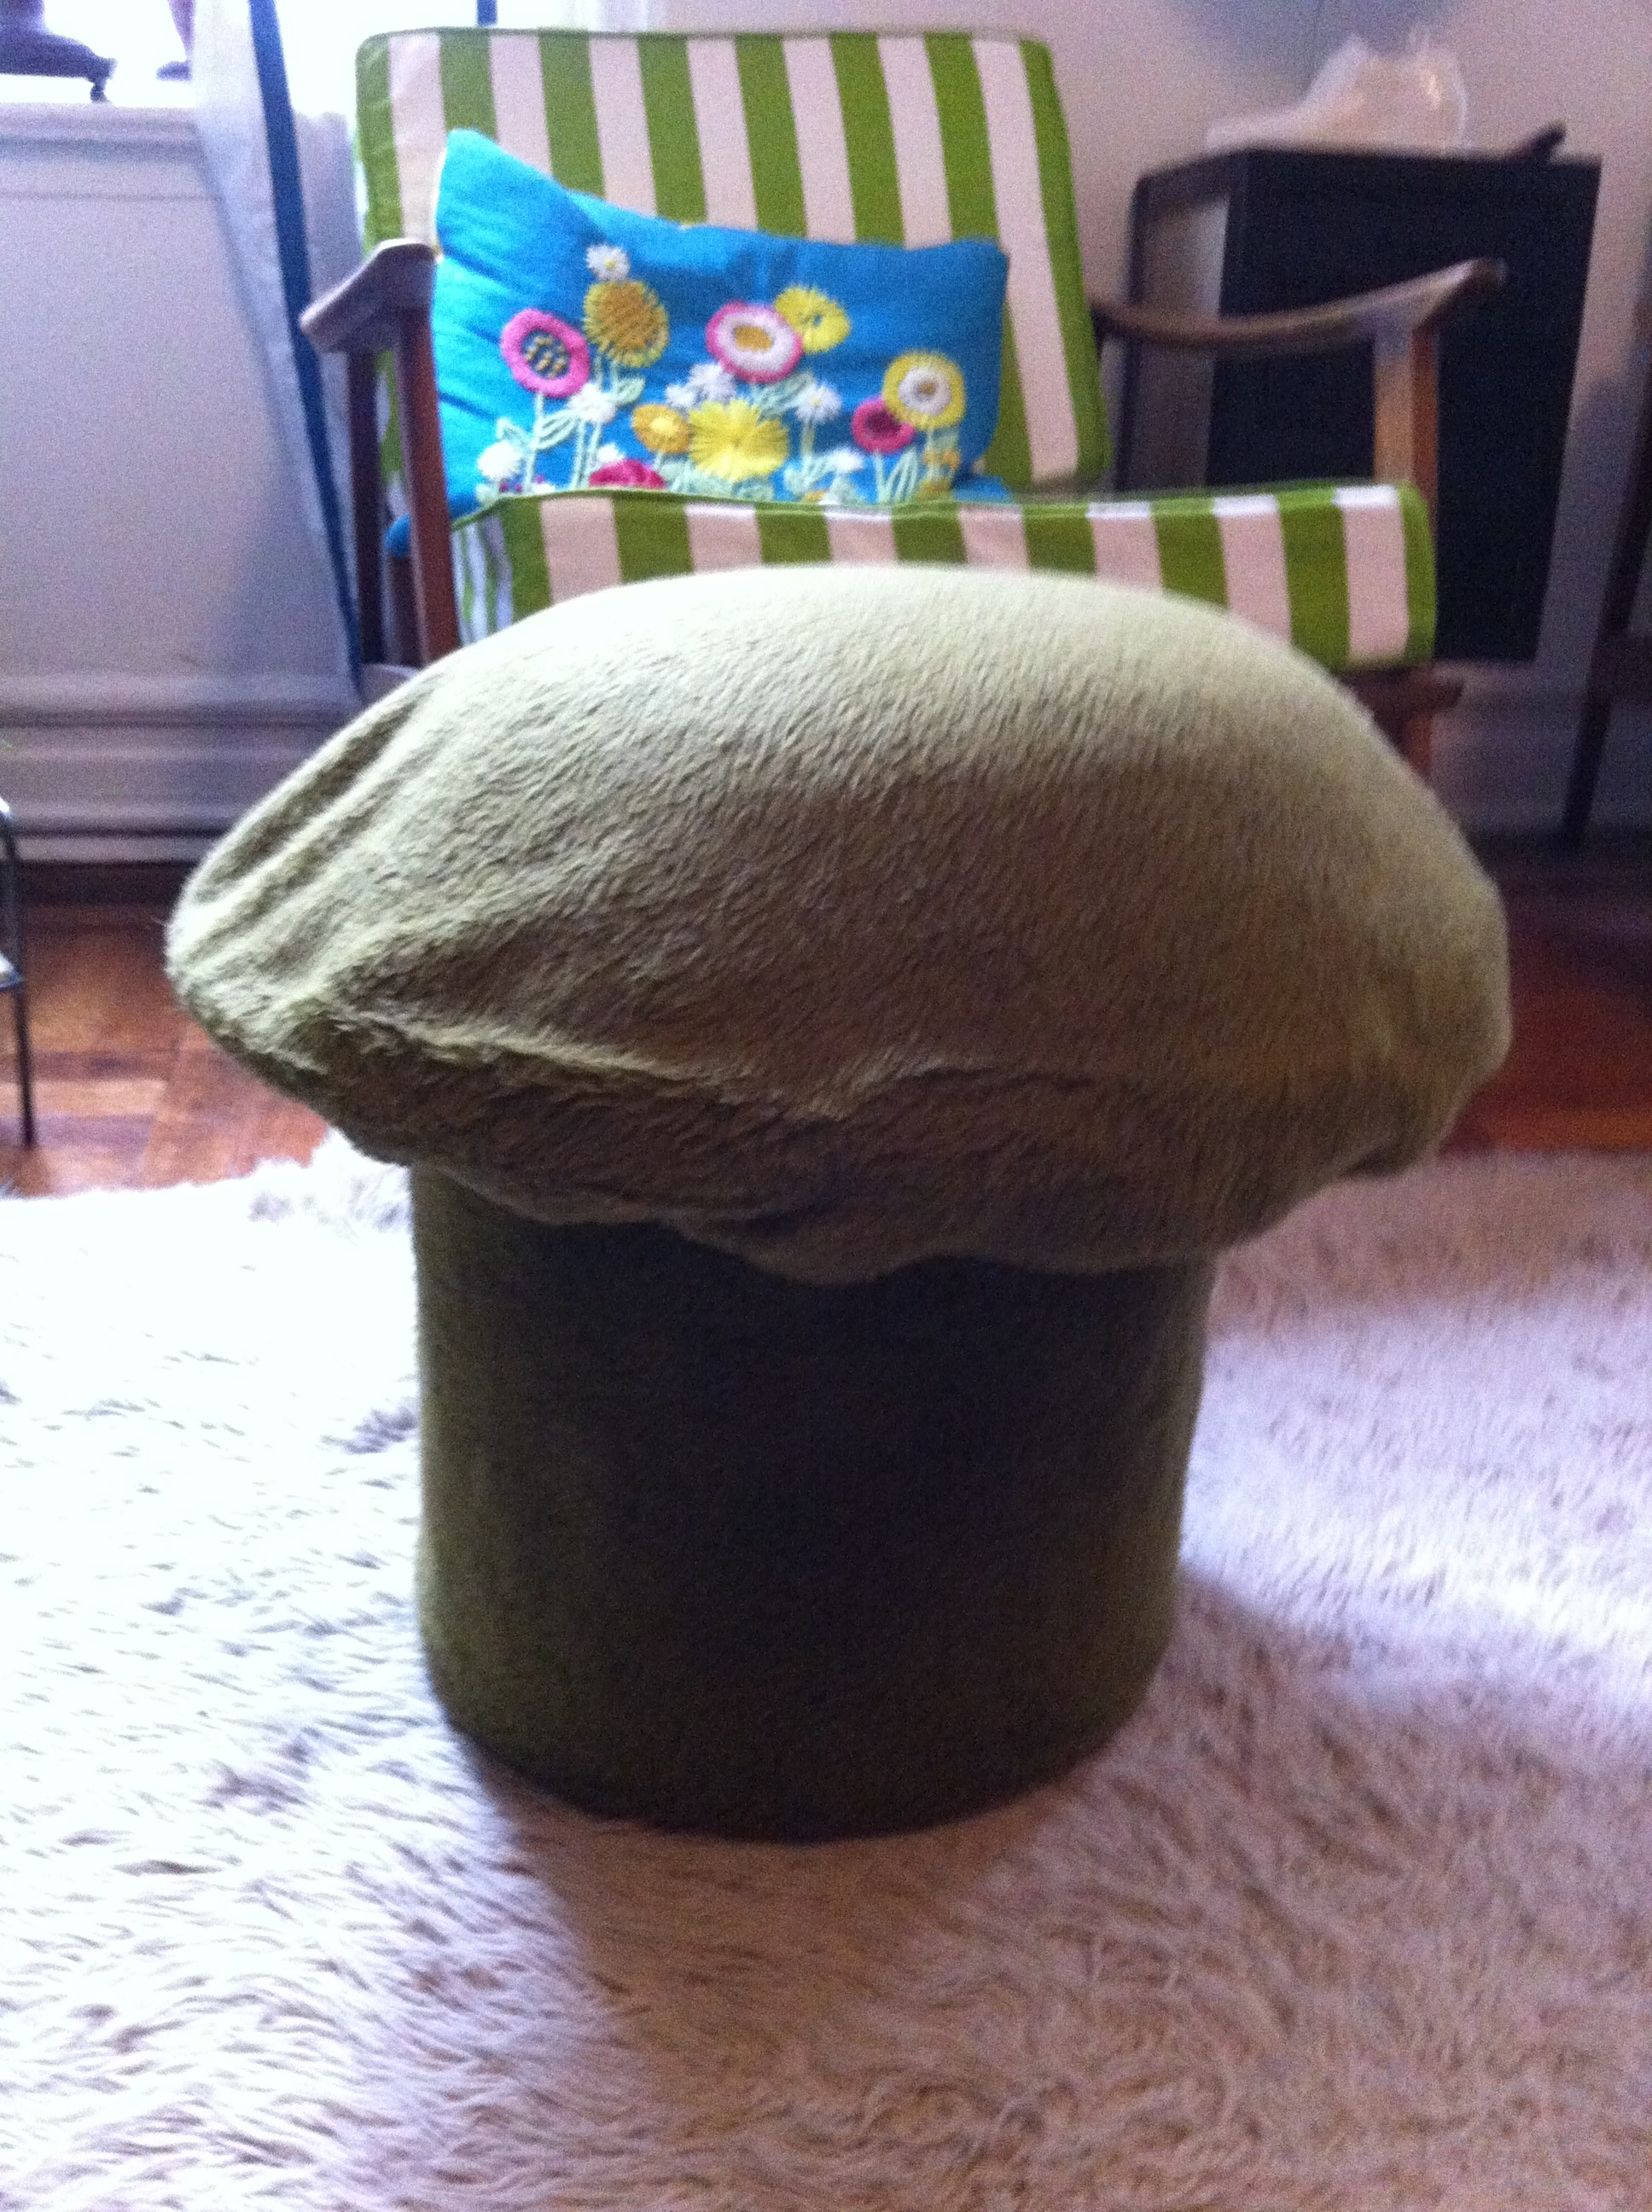 A close up of 2nd mushroom shaped ottoman